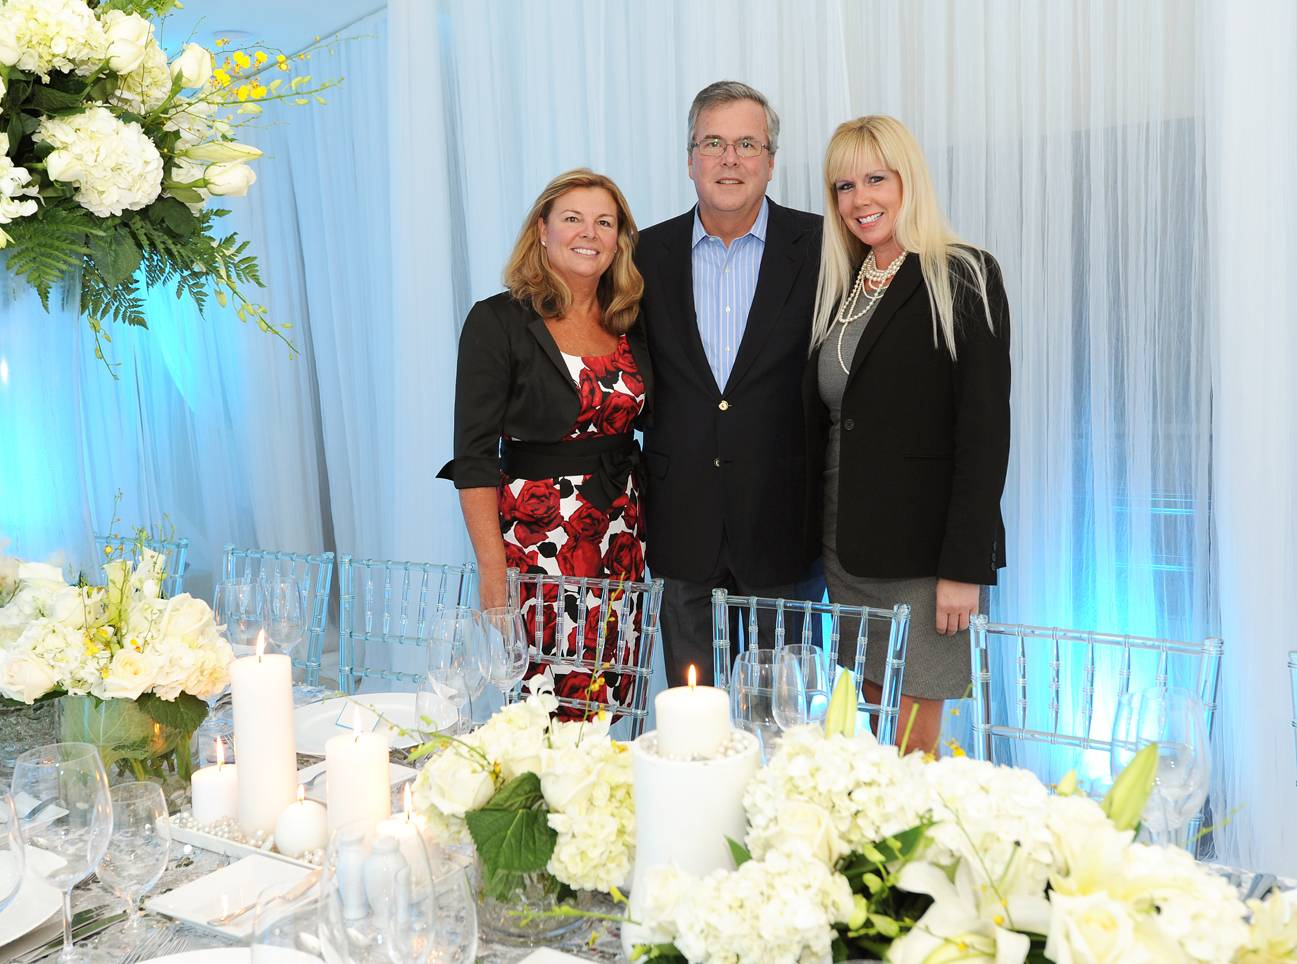 Chris Landshut, Exec. Director of Cystic Fibrosis Foundation for South Florida_  Former Florida Governor Jeb Bush and Jen Klaassens, VP Programs with The Wasie Foundation